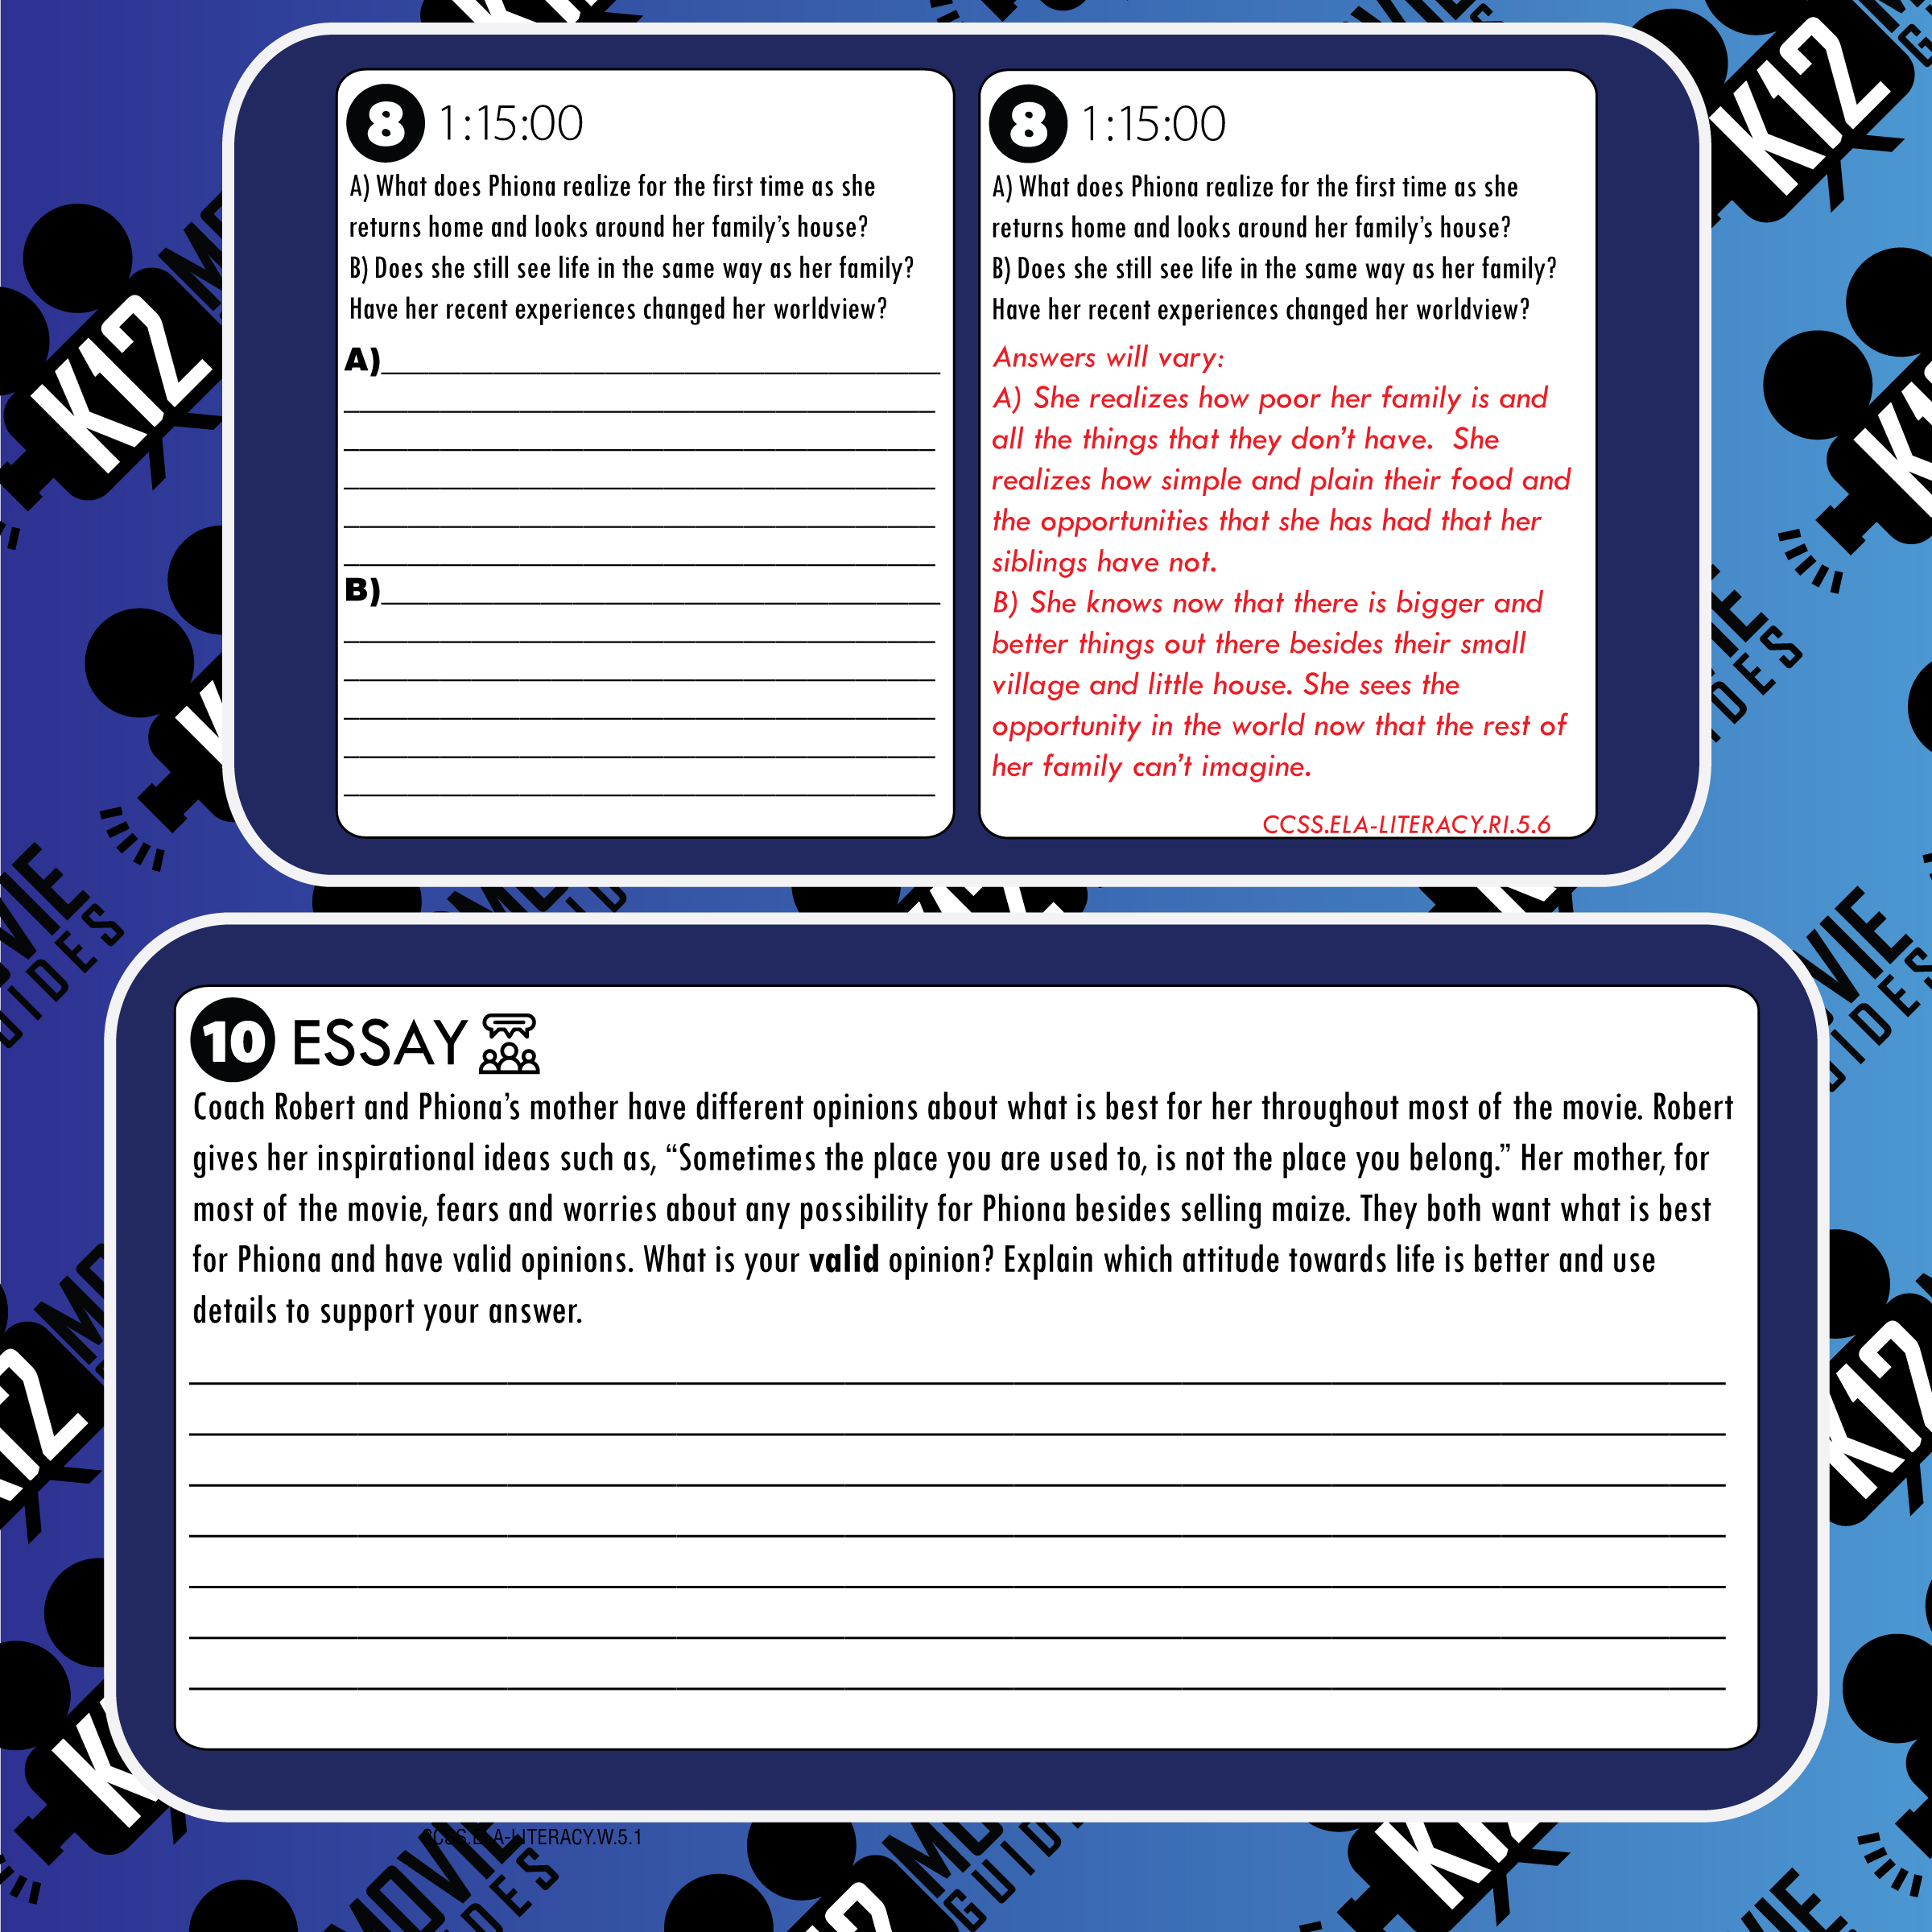 Romeo and Juliet Movie Guide | Questions | Worksheet (PG - 1968)